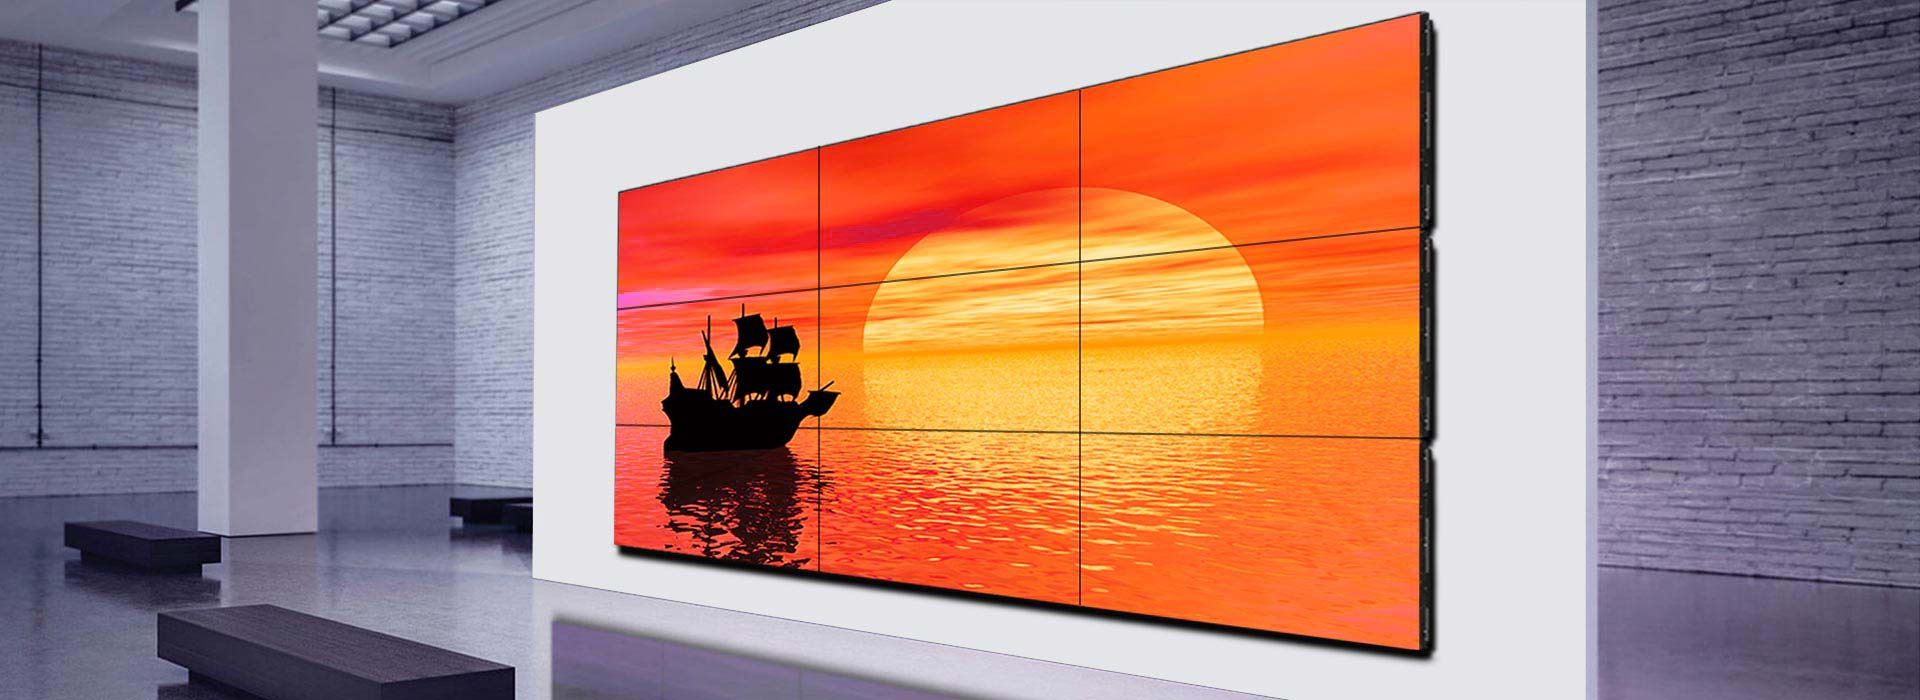 LCD Video Wall Displays Solutions